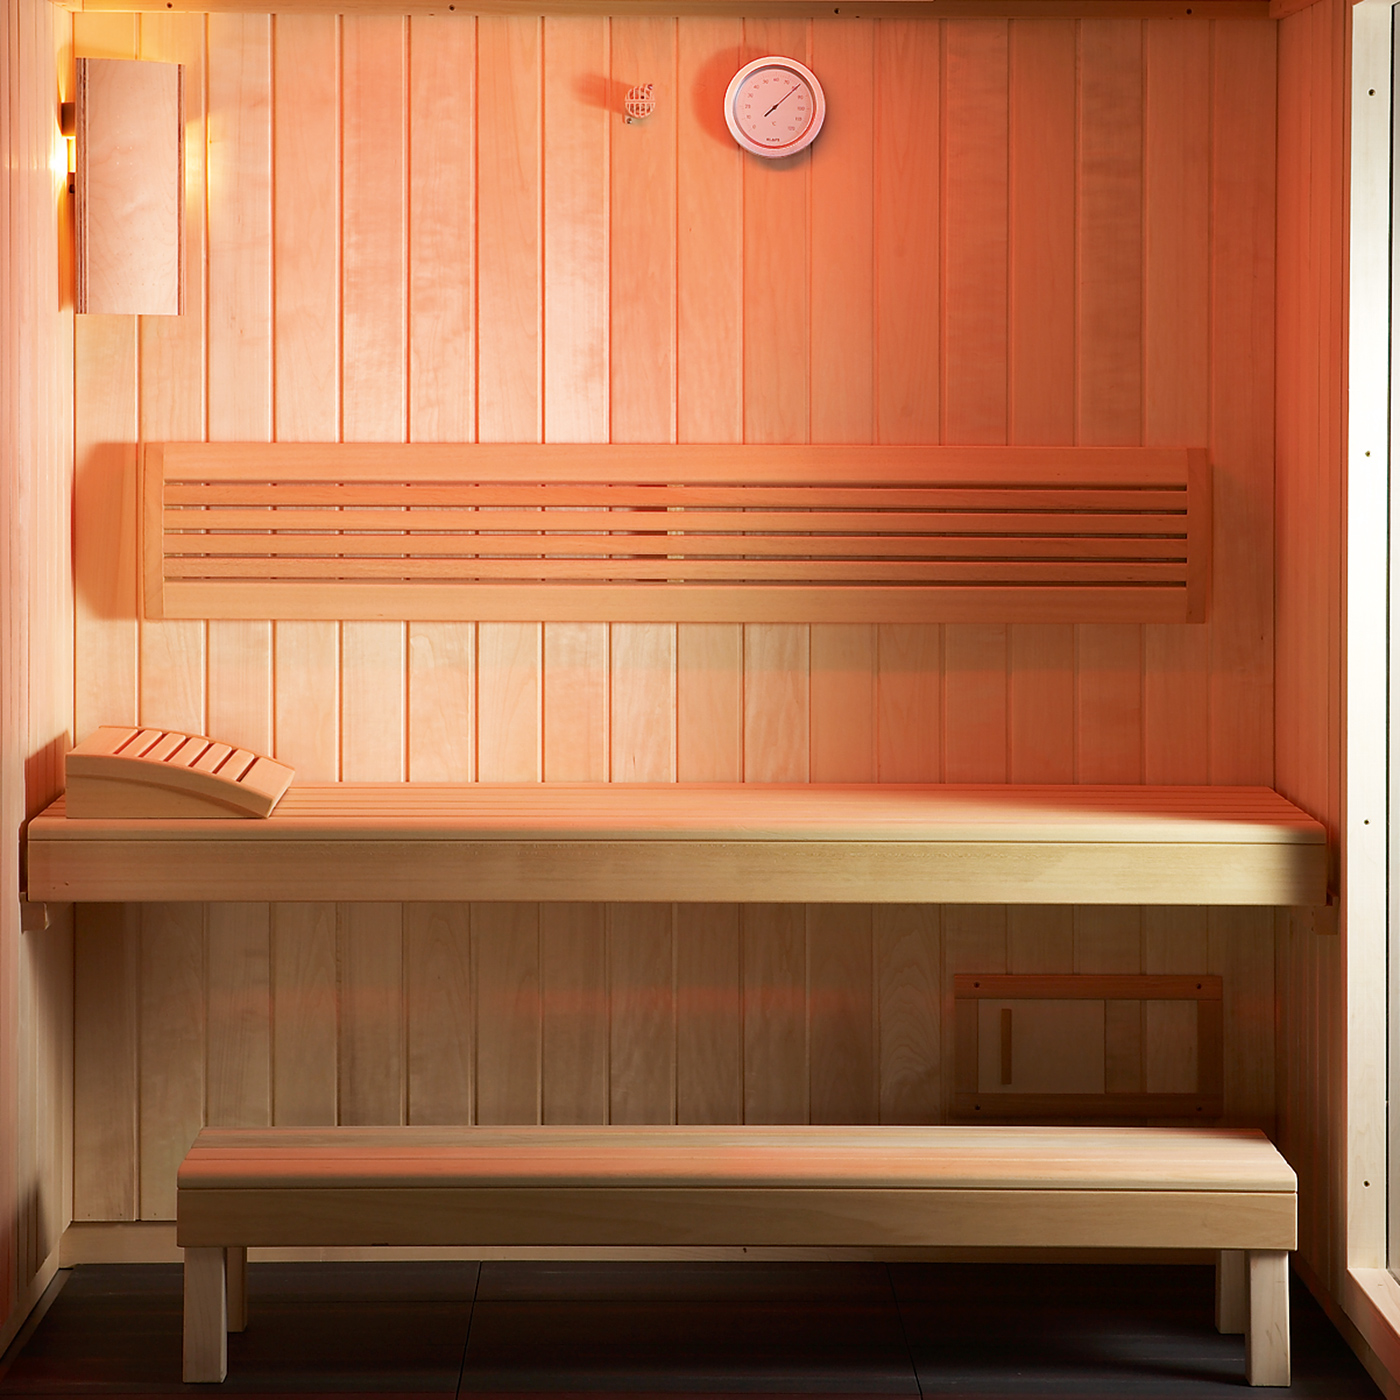 smartsauna die sauna f r die steckdose. Black Bedroom Furniture Sets. Home Design Ideas